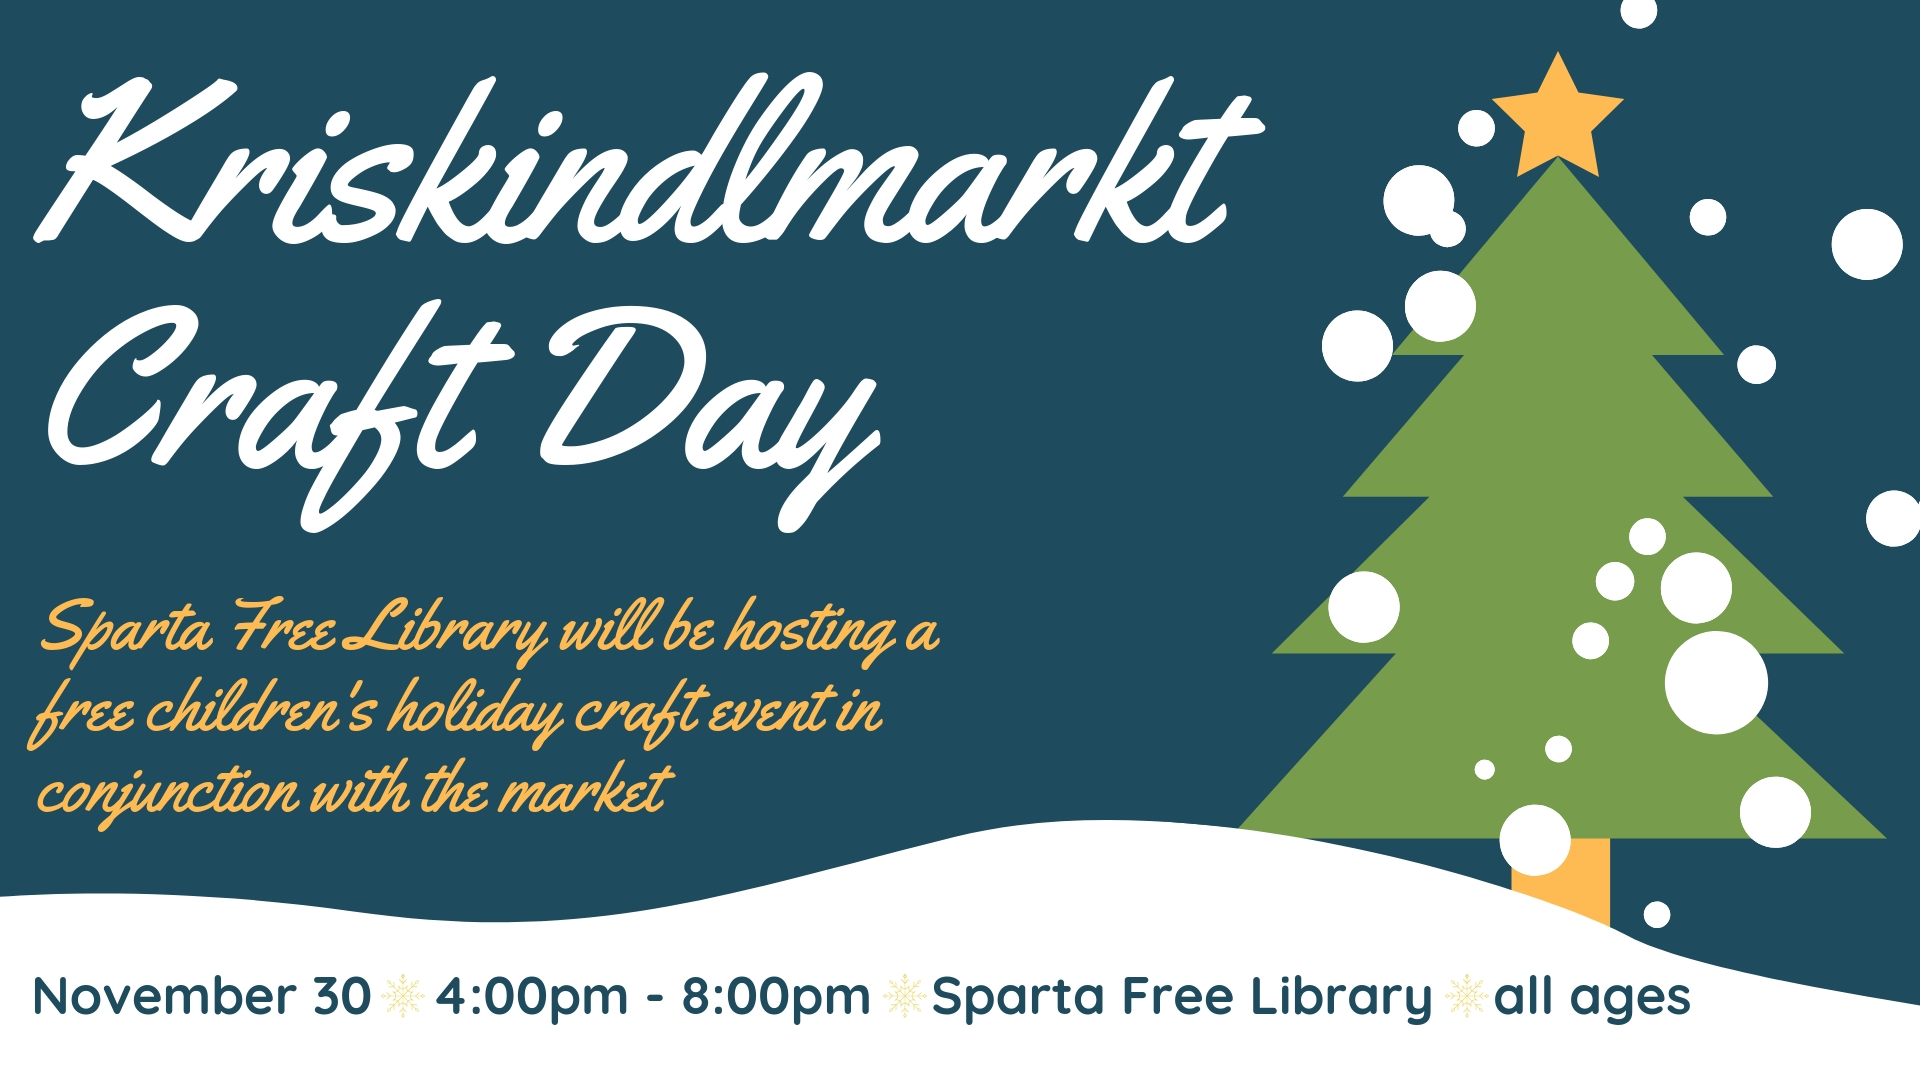 Kriskindlmarkt Craft Day poster 2018